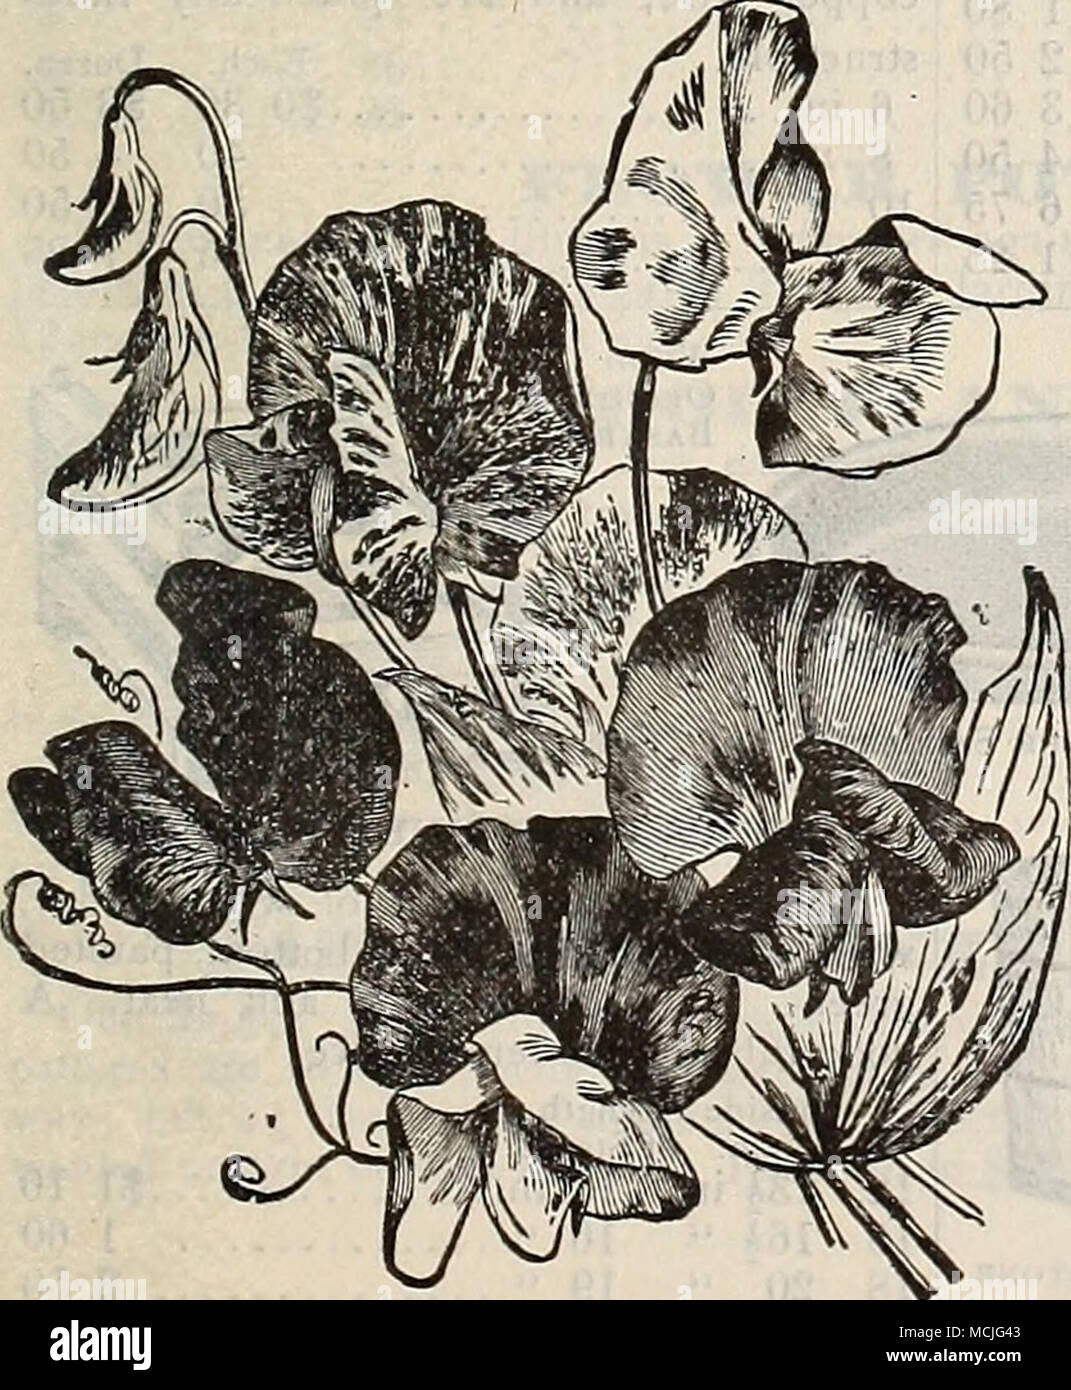 . SWEET PEAS. For early flowering we advise autumn planting; sow about the end of October in this latitude. 'The following are the choicest of Eckford's Large-flowering Sorts. For a complete list, see page 94 of our Garden Calendar for 1900. per per oz. PKT. Aurora, White, striped orange salmon 10 5 America. Red striped white 10 5 Ai)ple Blossom. Rosy pink, blush wings 10 5 Blanche Burpee. Largest white 10 5 Blanche Ferry. Pinkand white, ^â ery floriferous ... 10 5 Blanche Ferry. Extra early flowering 10 5 Black Knight. L'eep maroon... 15 5 Captain of tlie Blues. Bright purple blue Captivation Stock Photo